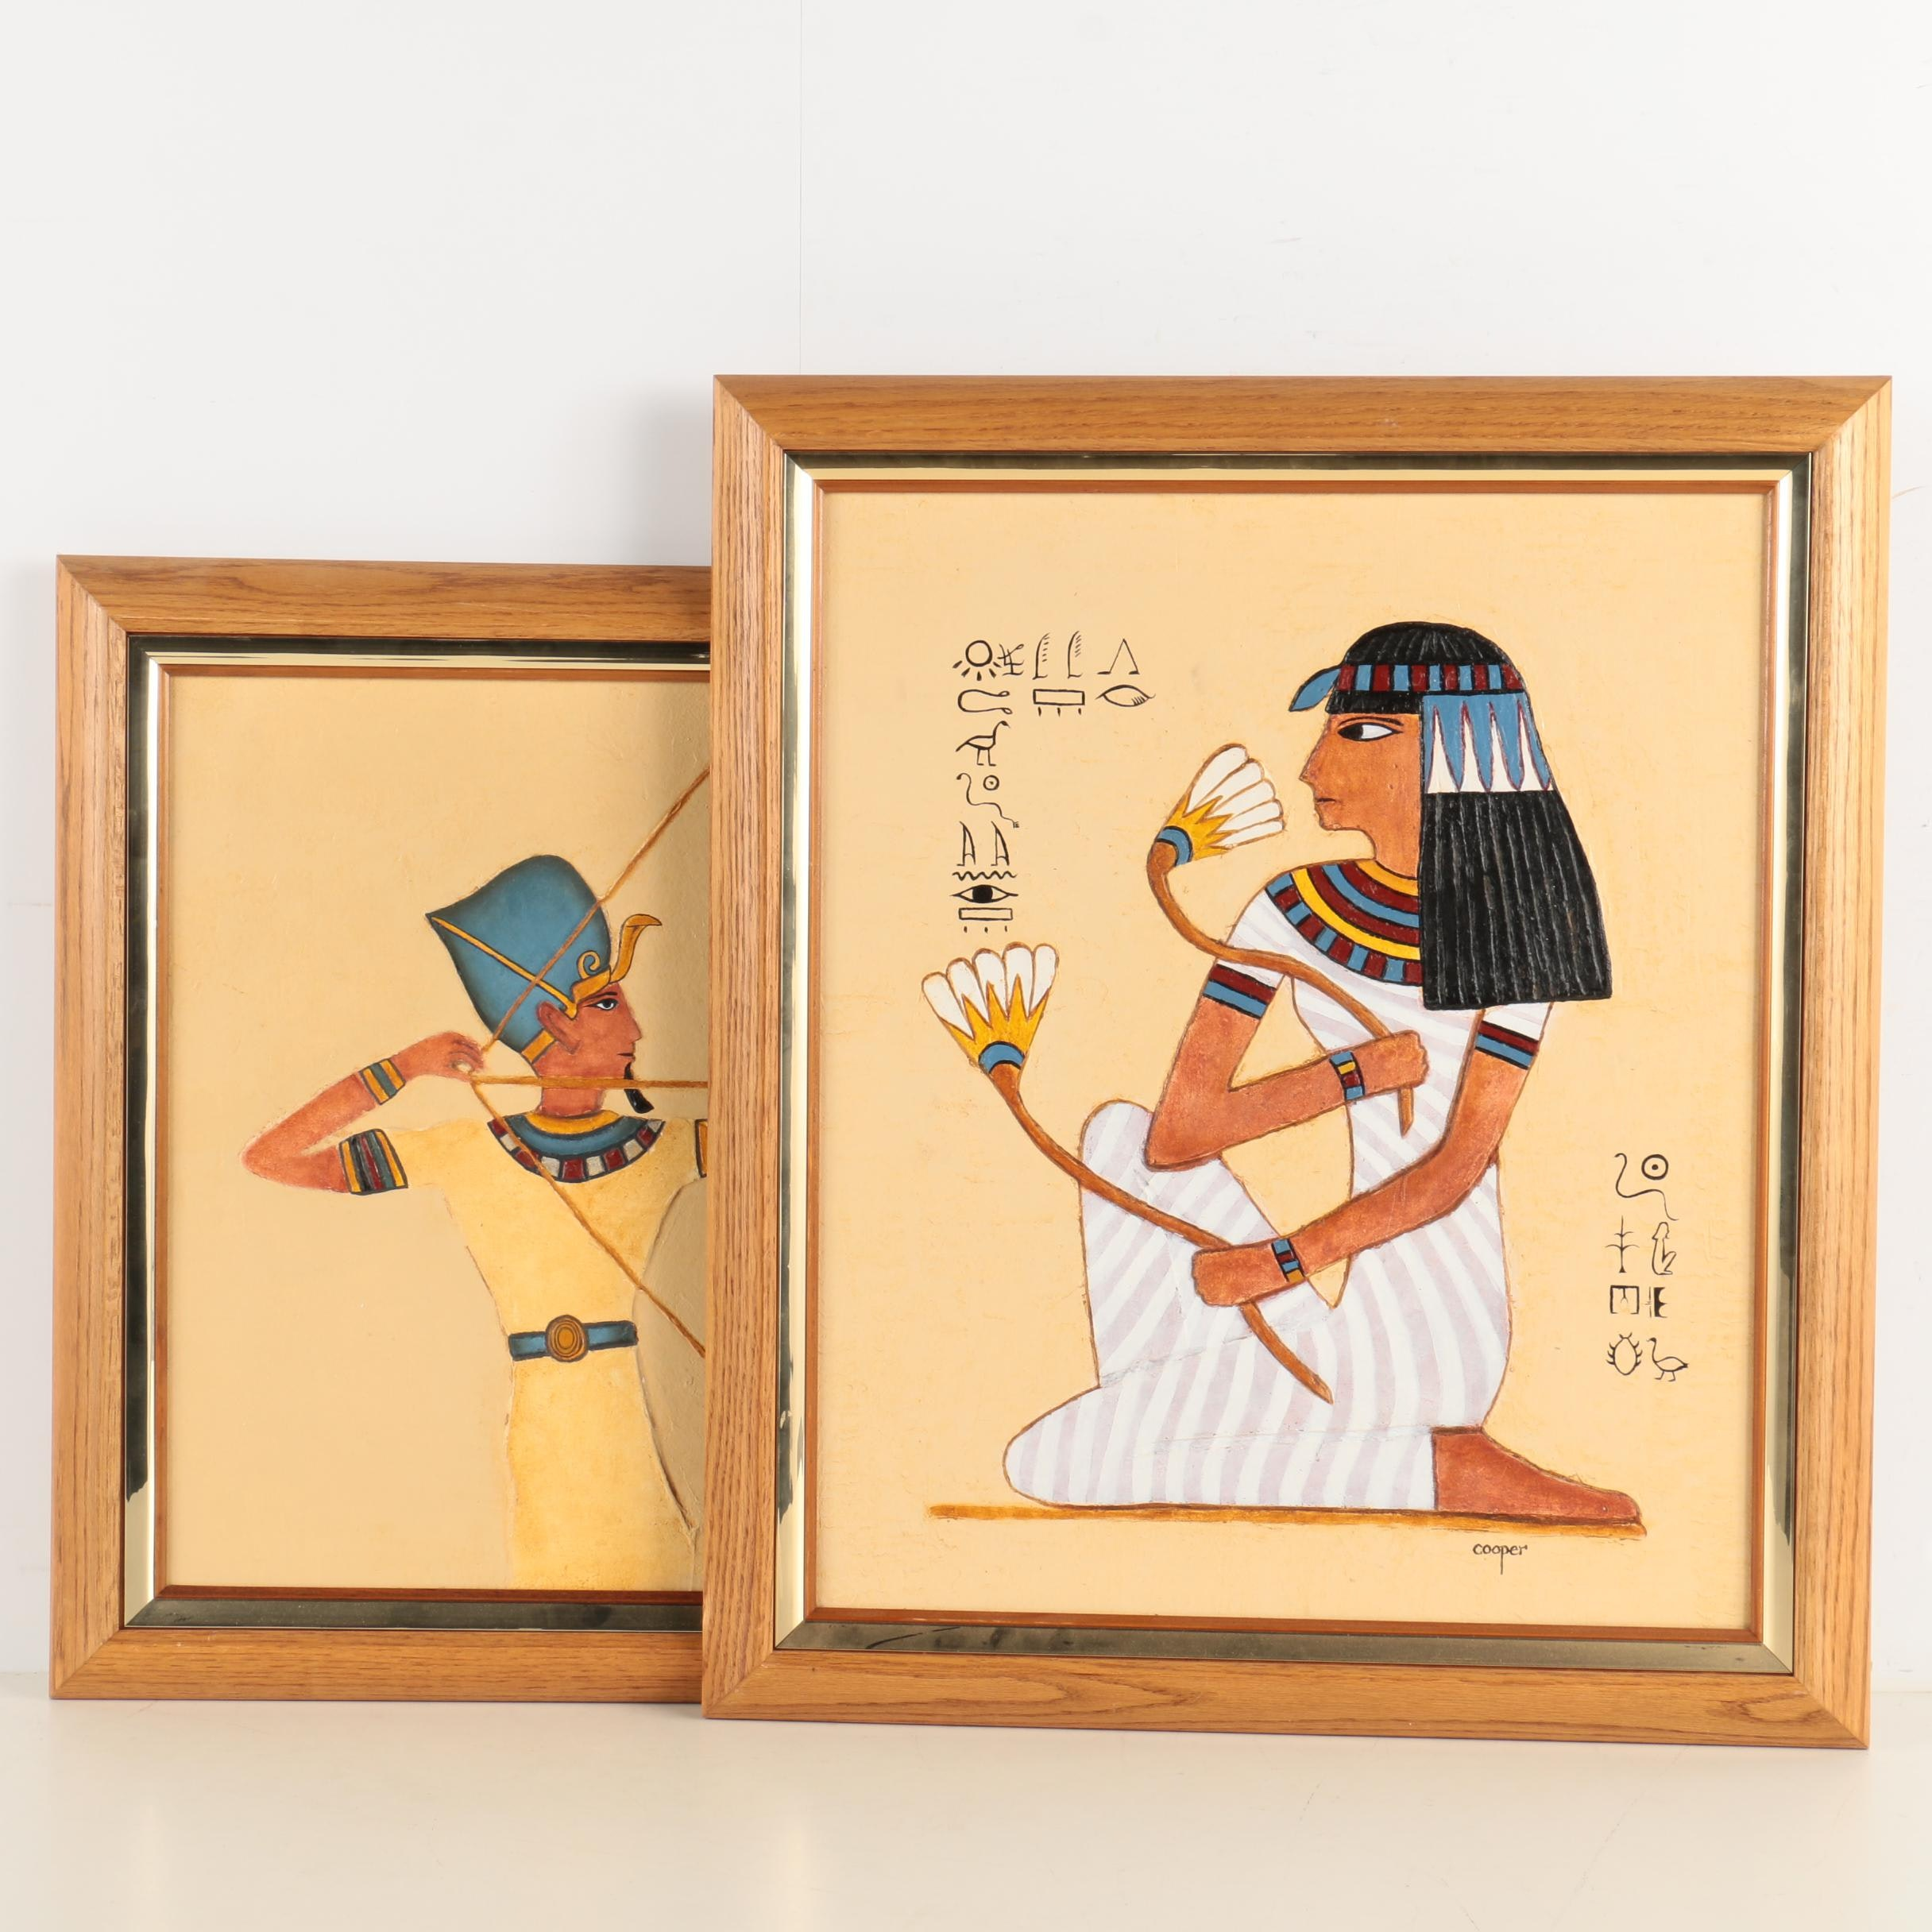 Signed Acrylic on Canvas Painting of Egyptian Inspired Subjects